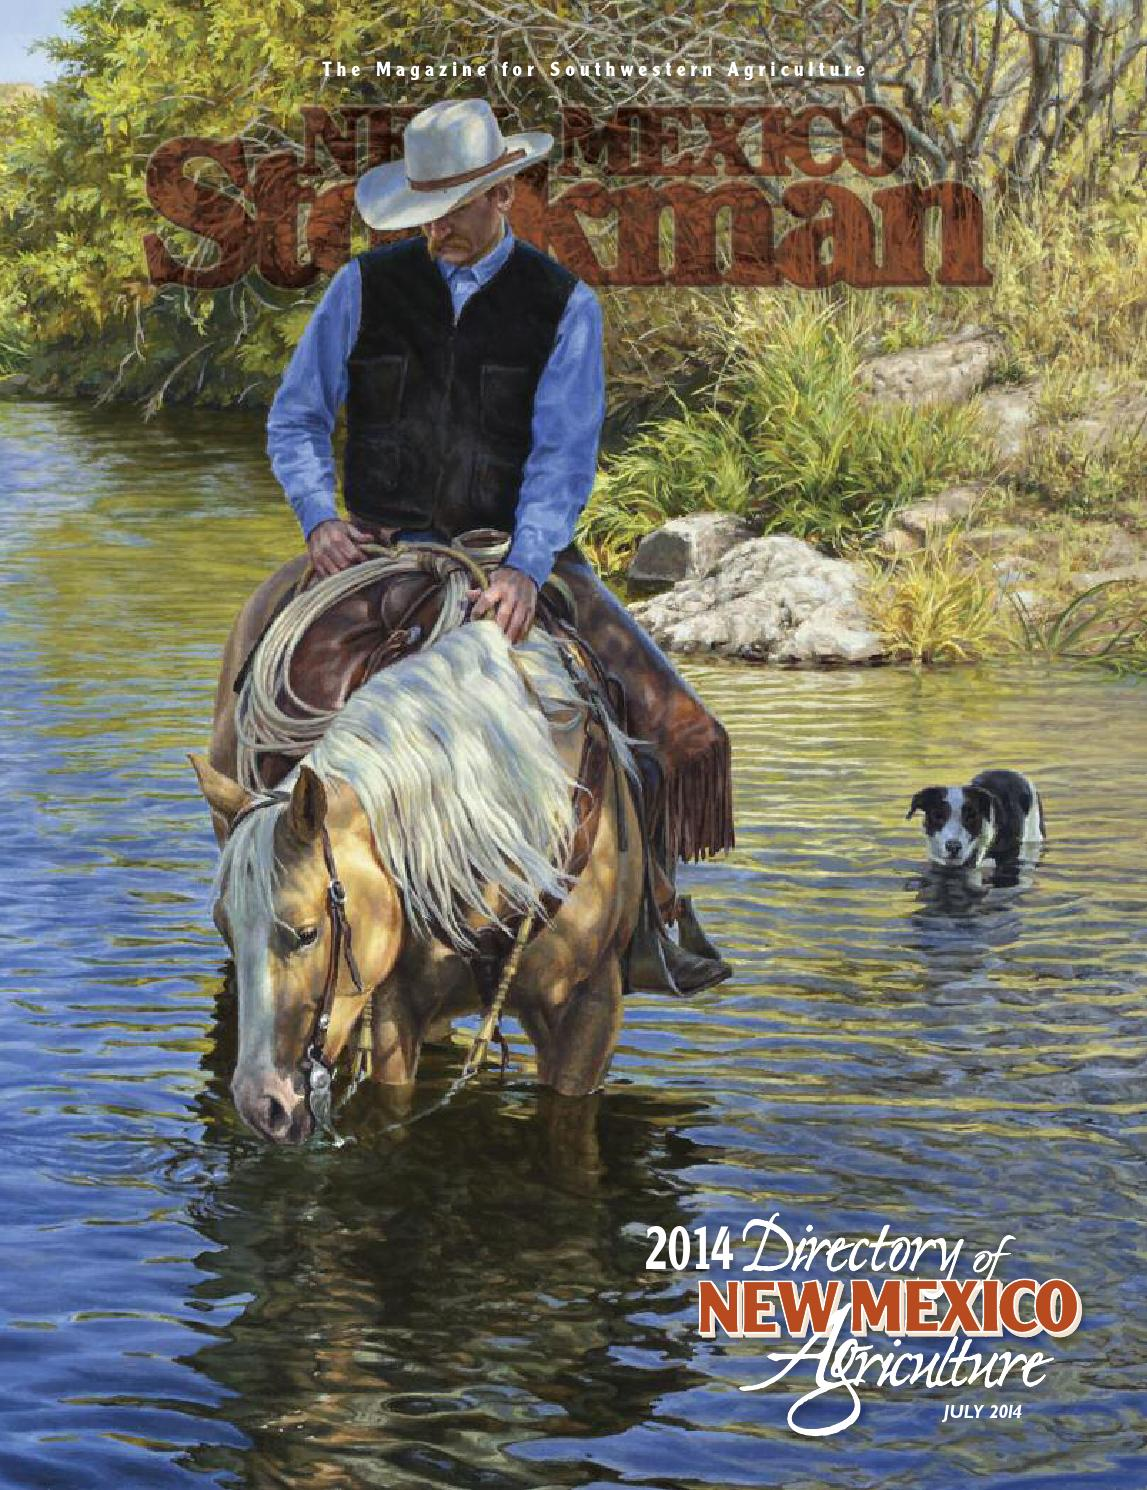 Nms July 2014 By Livestock Publishers Issuu New Nmb 143 Wiring Color Coces Explained C Daniel Friedman